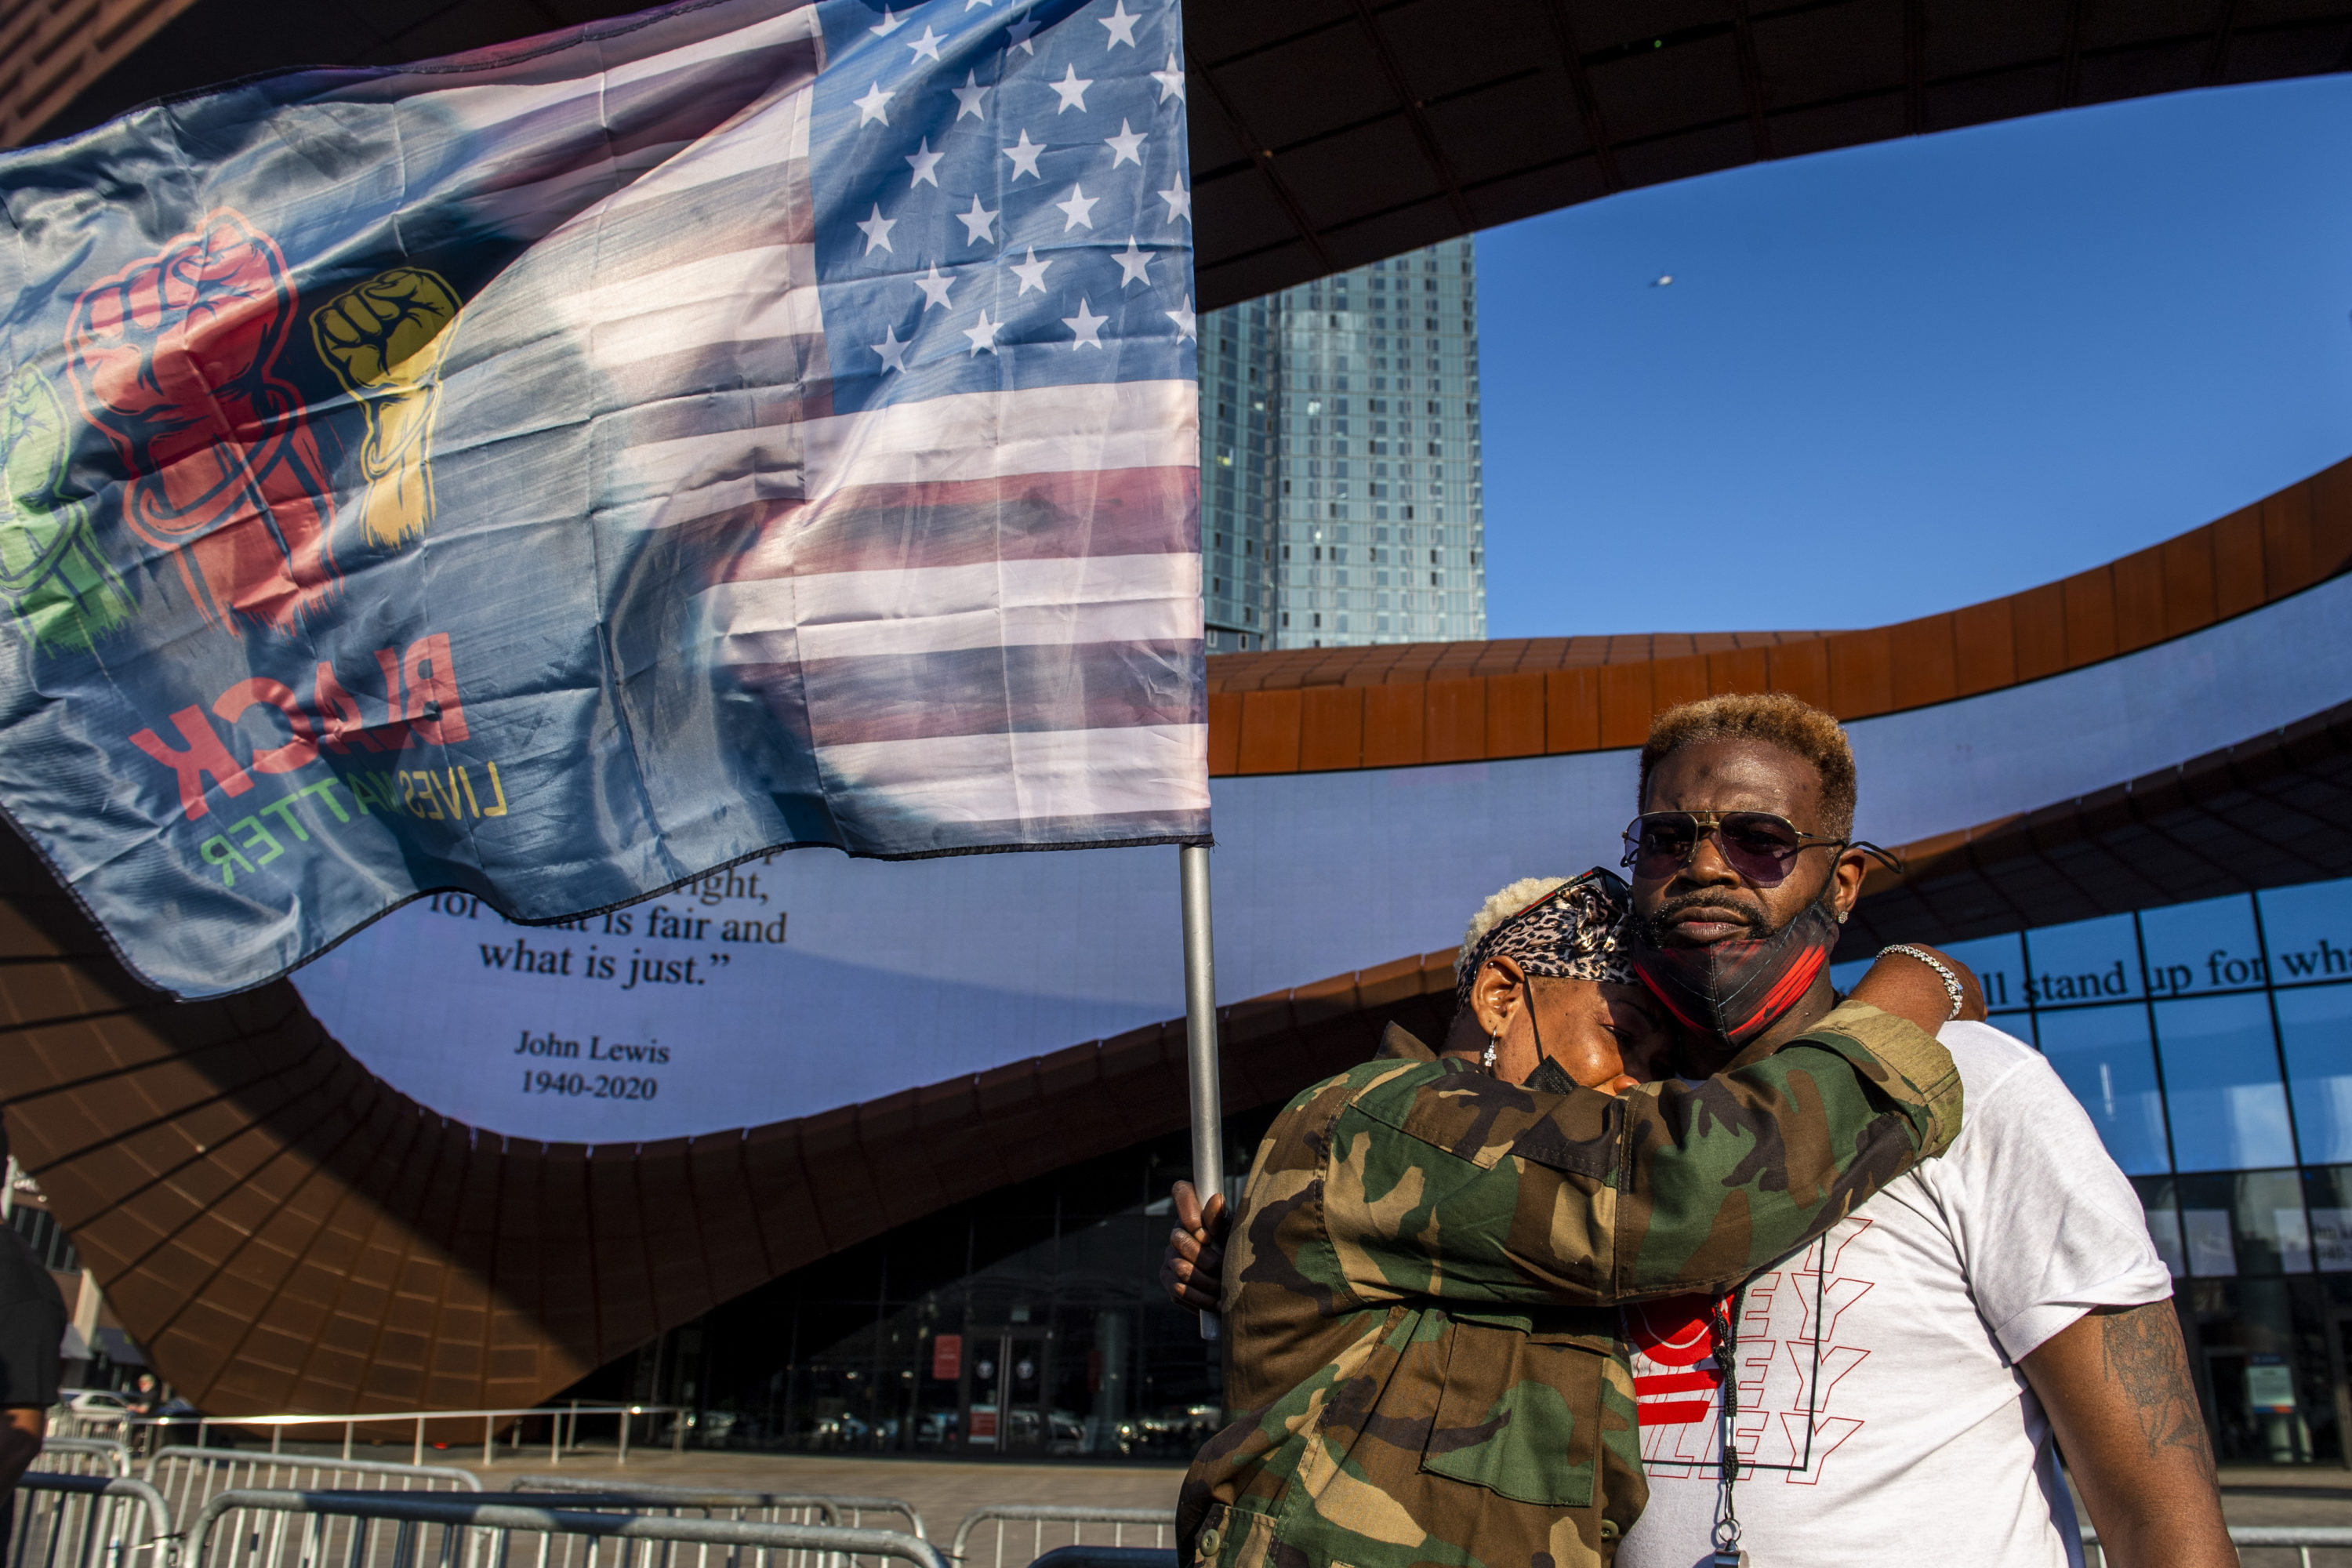 Ingrid Noel, 51, left, weeps on the shoulder of Robert Bolden, at a rally outside the Barclays Center on Tuesday in the Brooklyn borough of New York. (Brittainy Newman/AP)